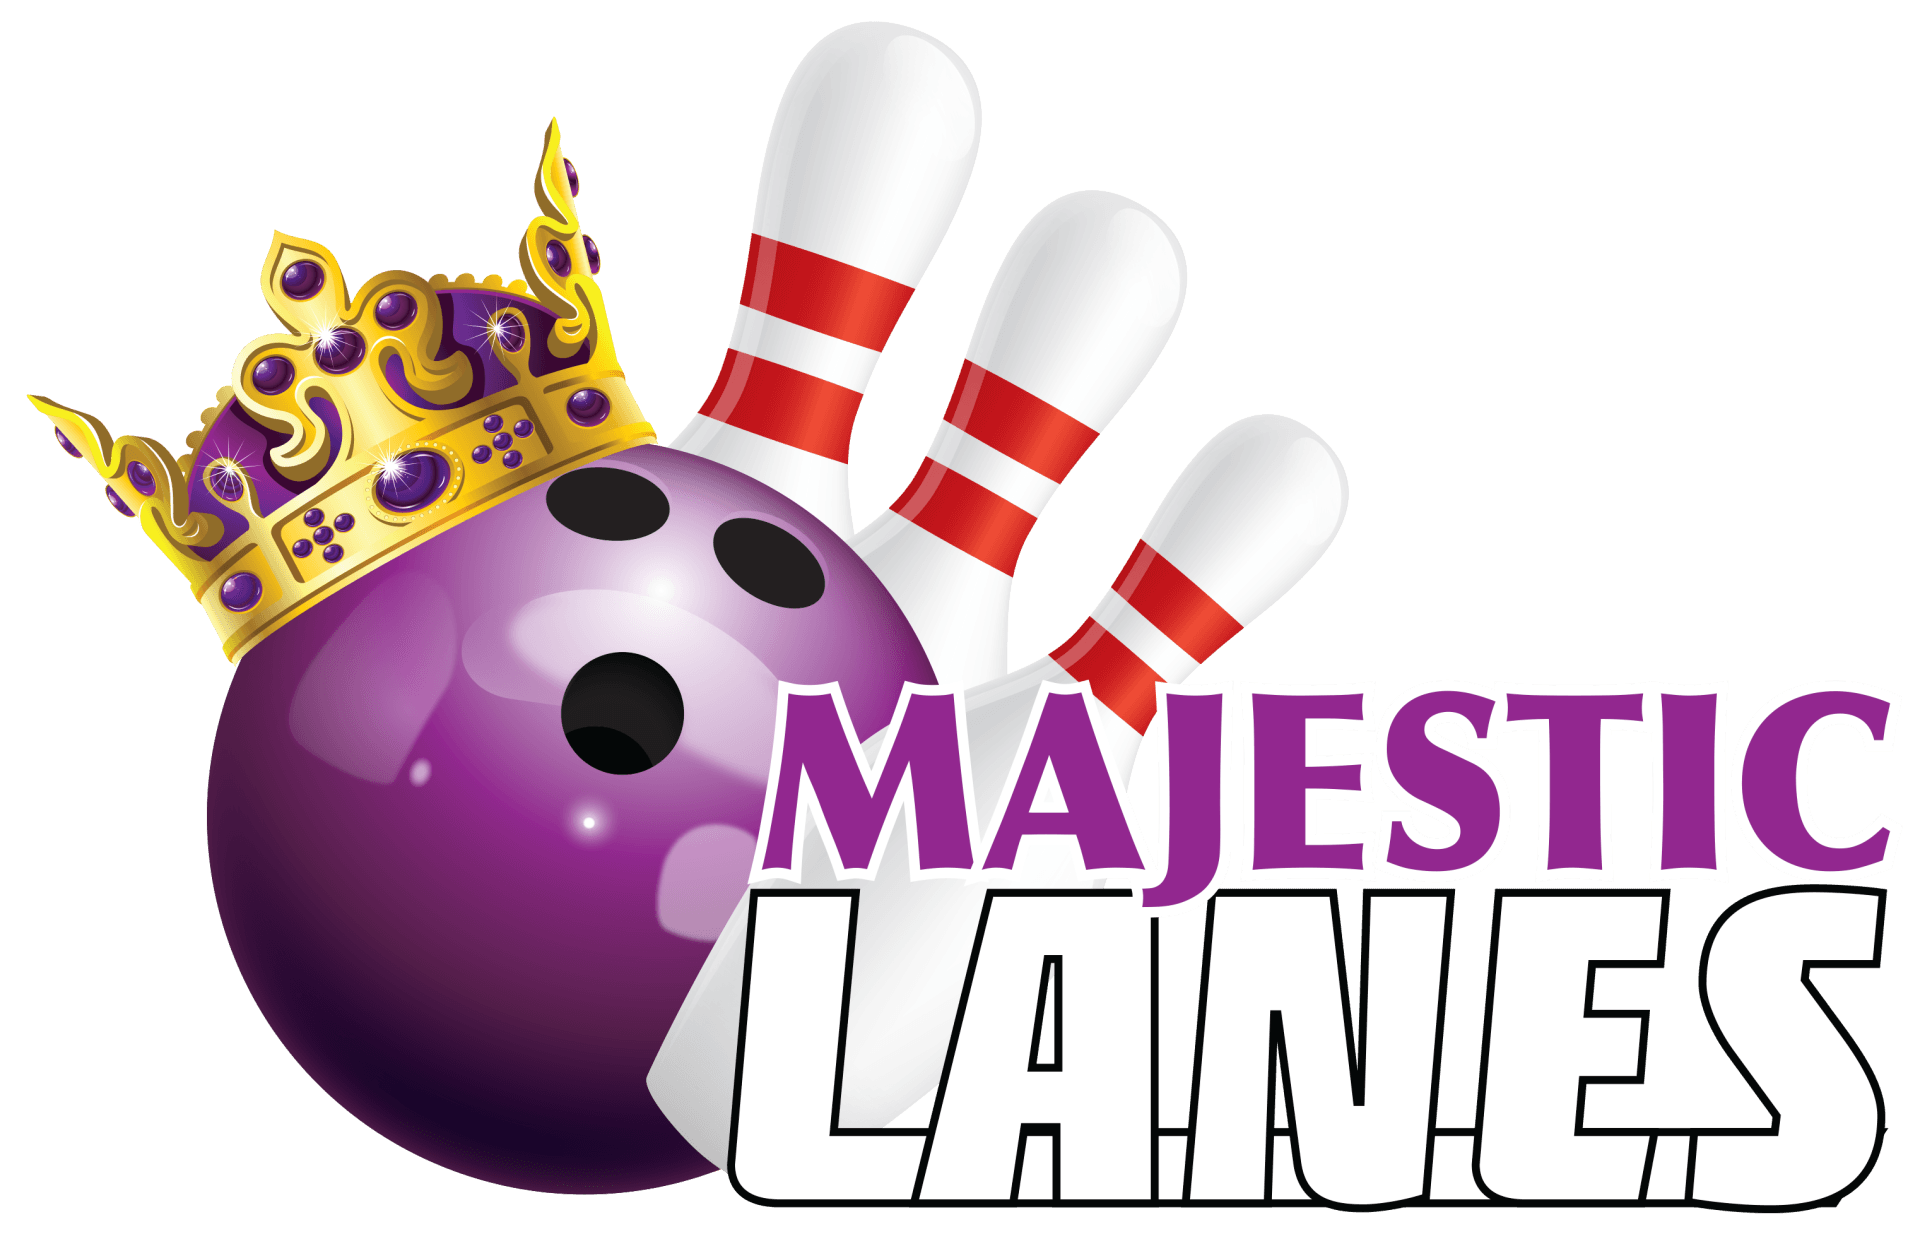 Majestic Lanes Bowling Woodbridge Nj